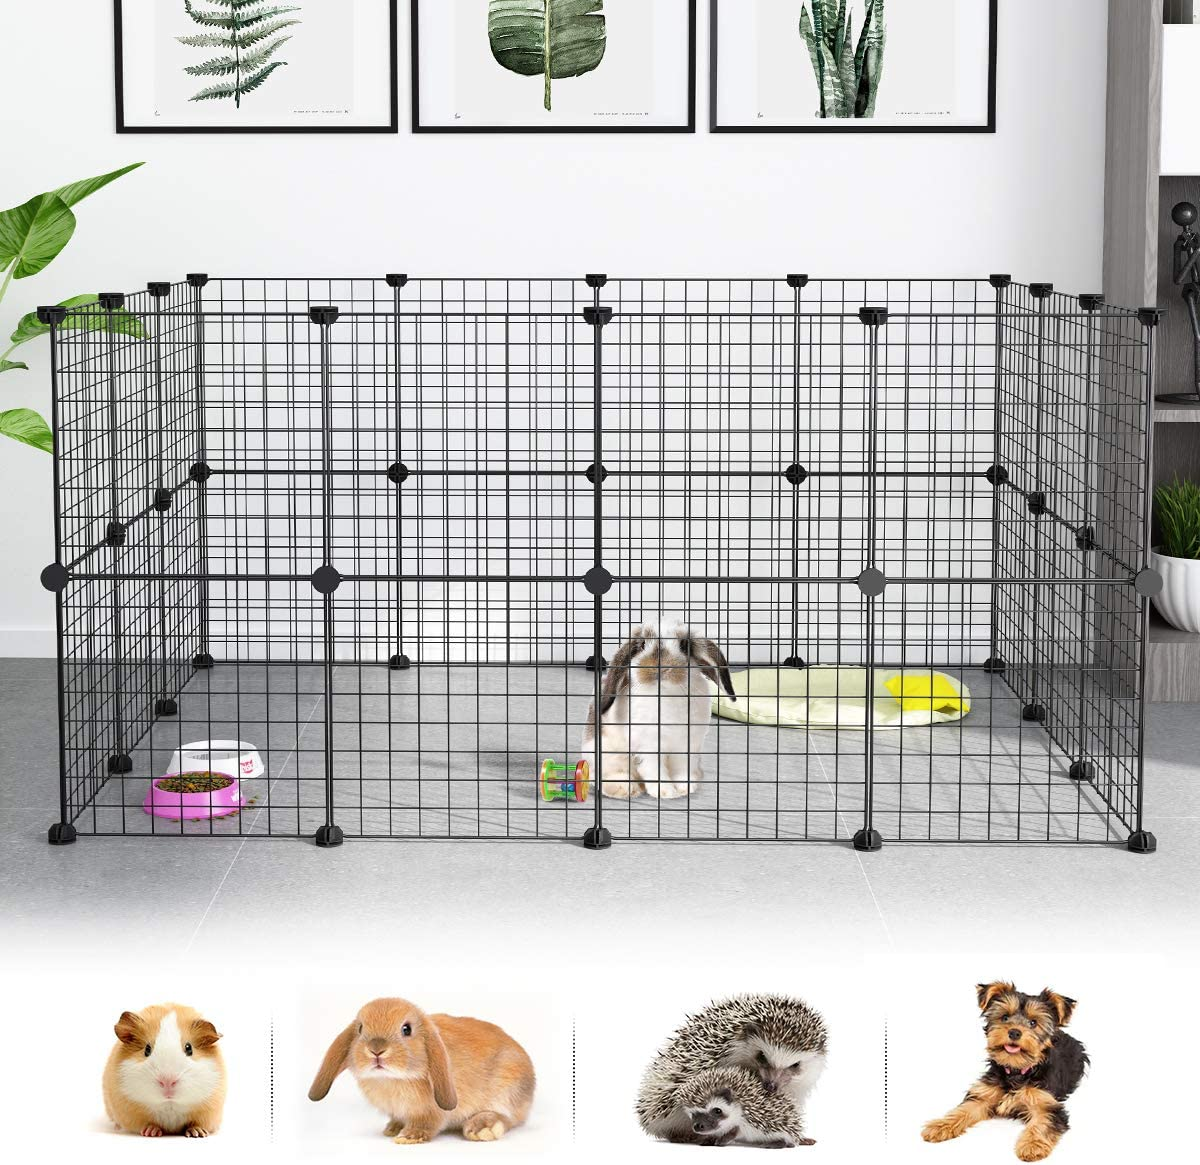 LANGRIA Pet Playpen, DIY Small Animal Cage for Guinea Pigs, Puppy Pet Products Portable Metal Wire Yard Fence Black